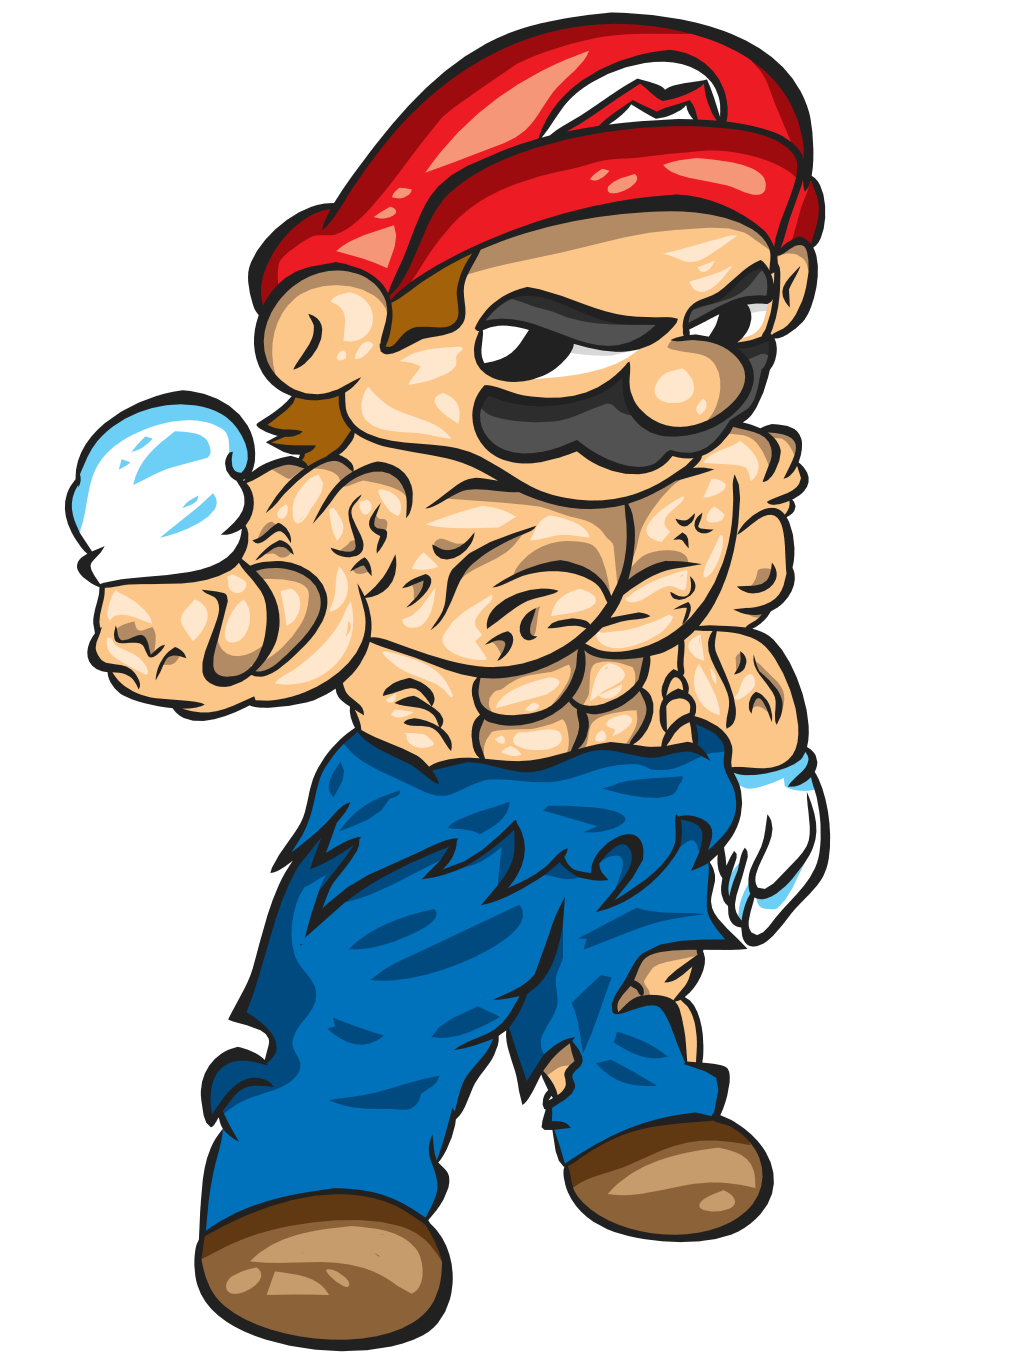 mario_muscles_by_greenate-d996unt.png